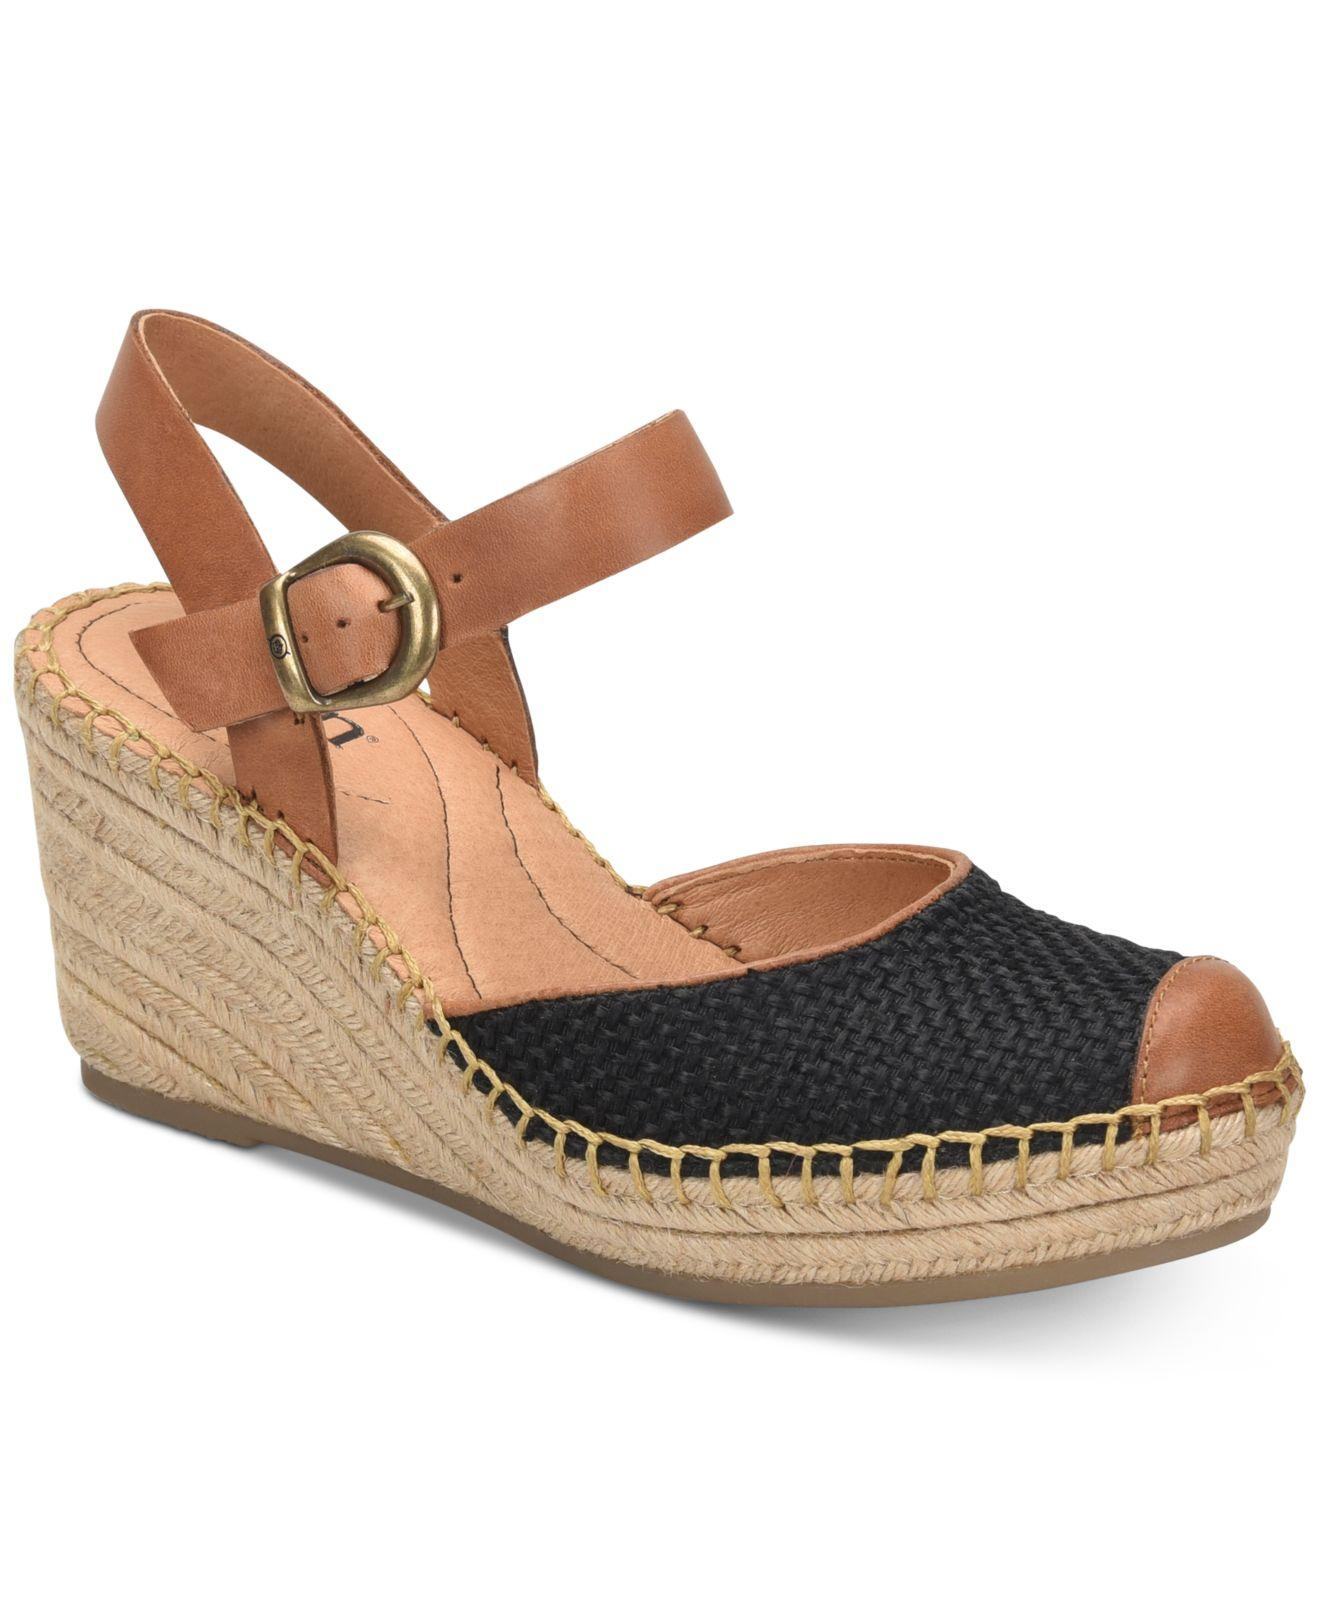 ae0a9ed742ab Lyst - Born Guadalupe Wedge Sandals in Black